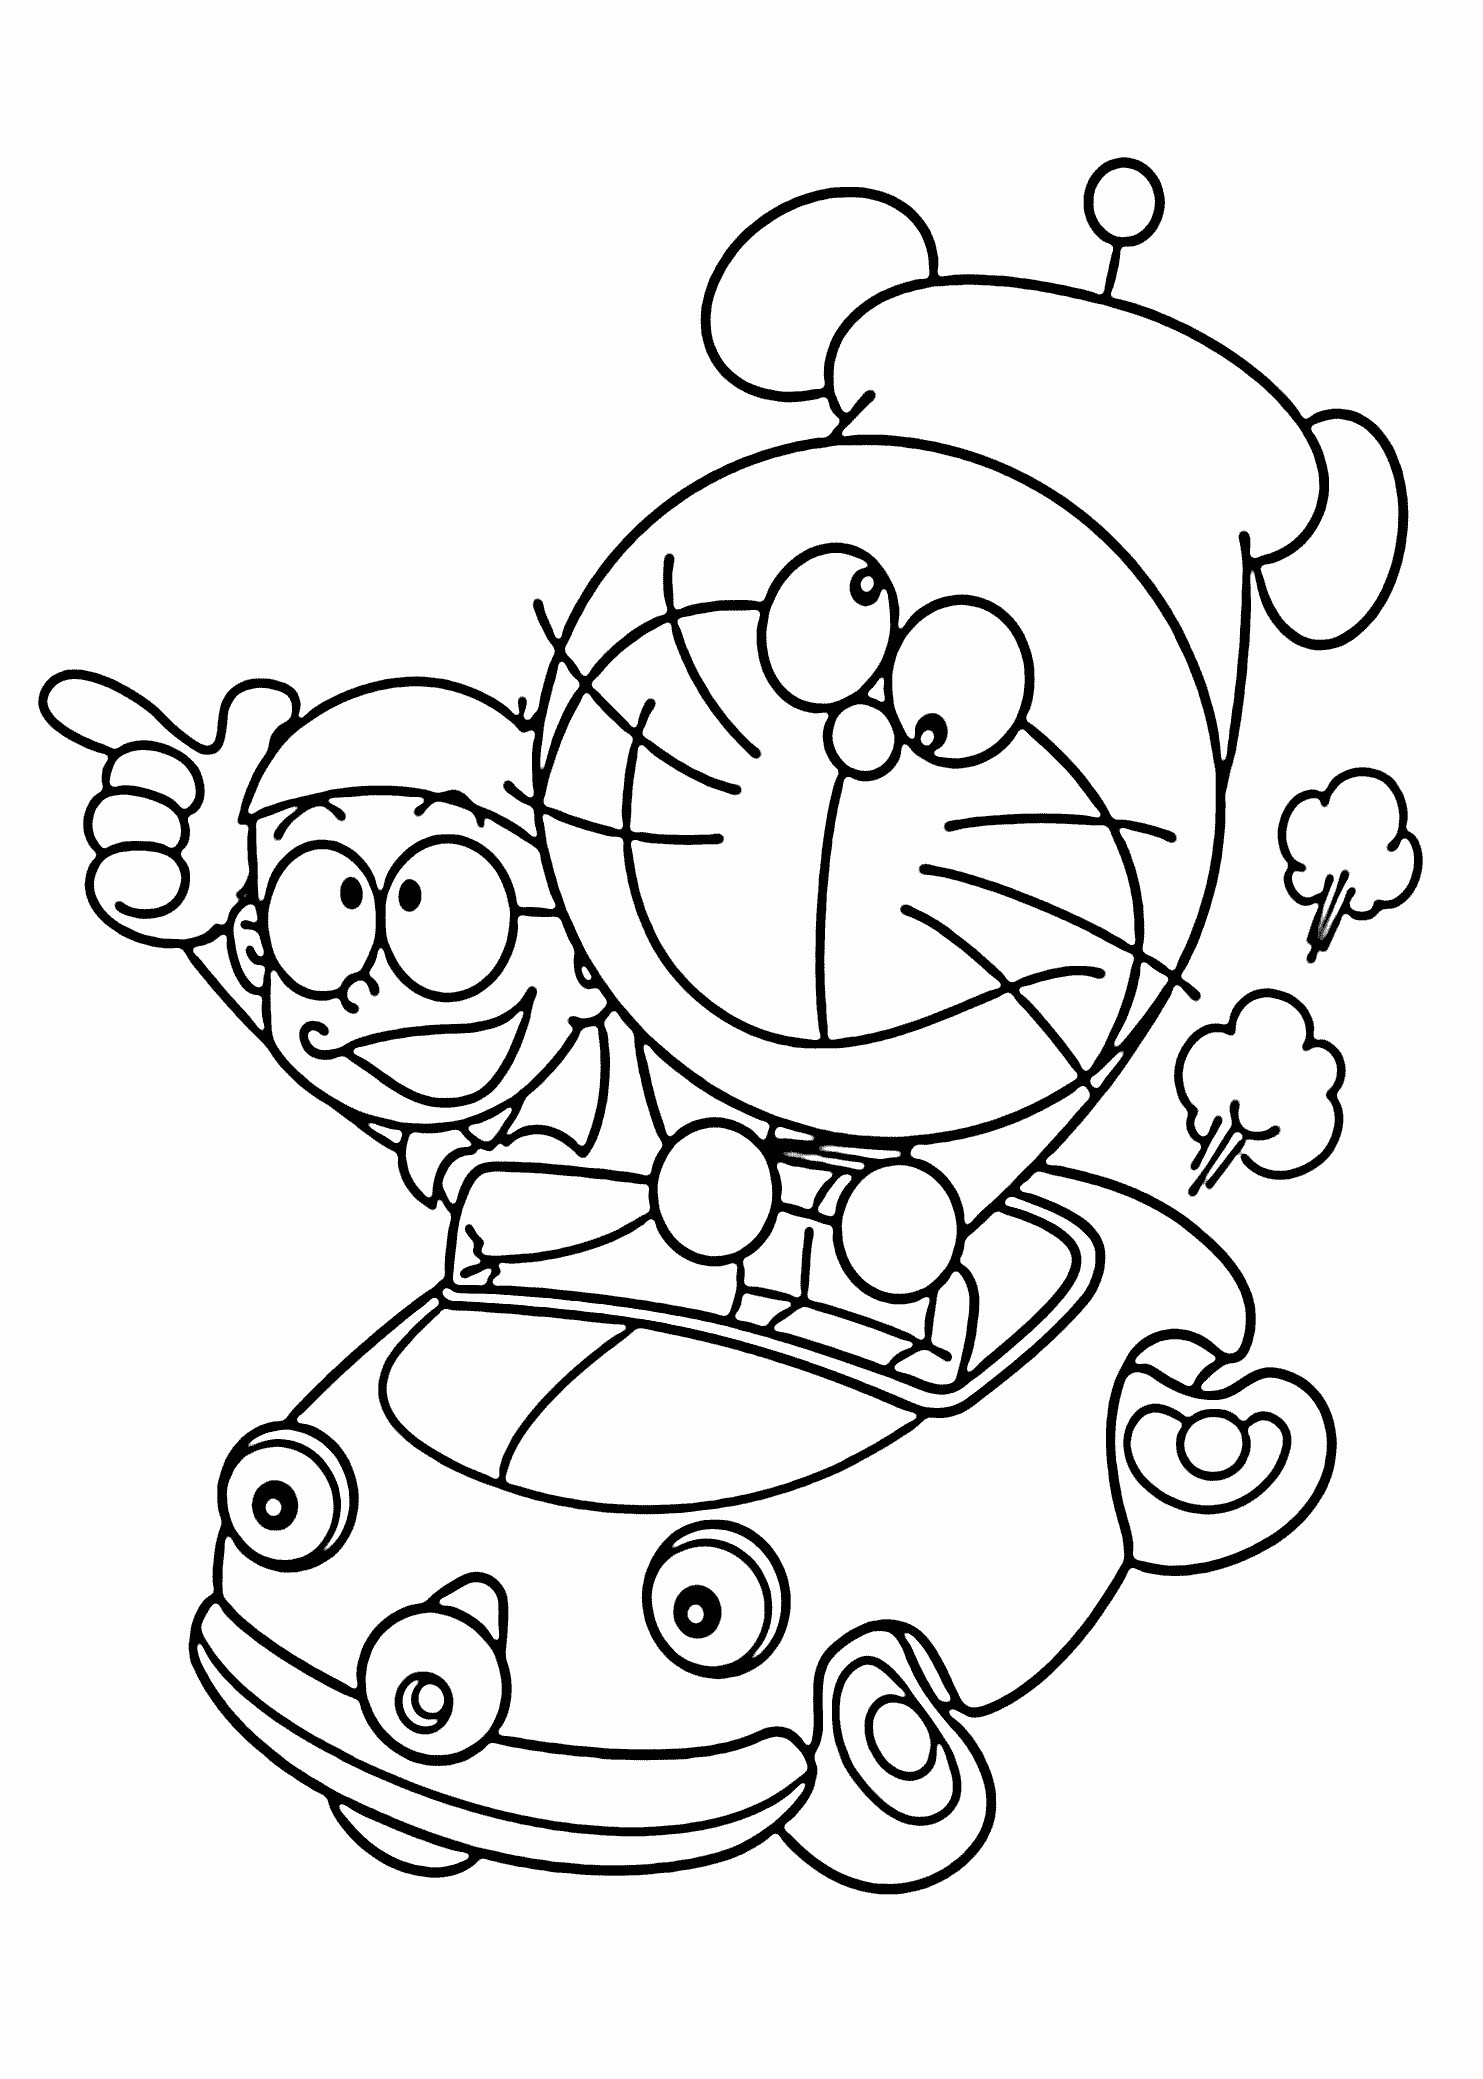 free coloring pages to color online Collection-Cuties Coloring Pages Basketball Coloring Page Elegant Cuties Coloring Pages Home Coloring Pages Best Color 6-t